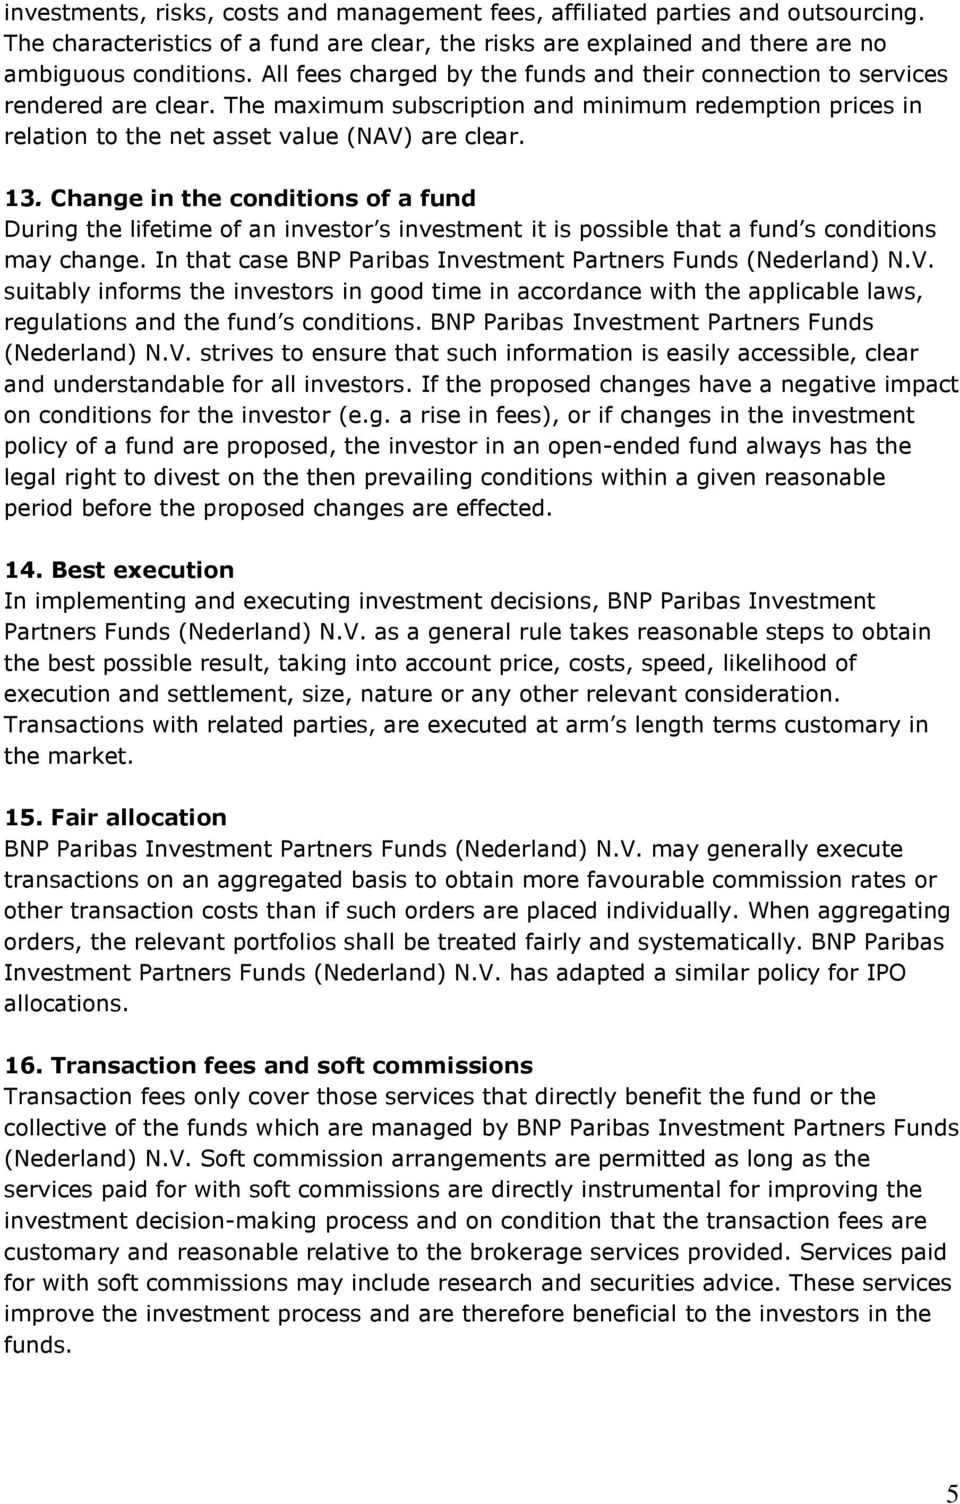 Change in the conditions of a fund During the lifetime of an investor s investment it is possible that a fund s conditions may change. In that case BNP Paribas Investment Partners Funds (Nederland) N.